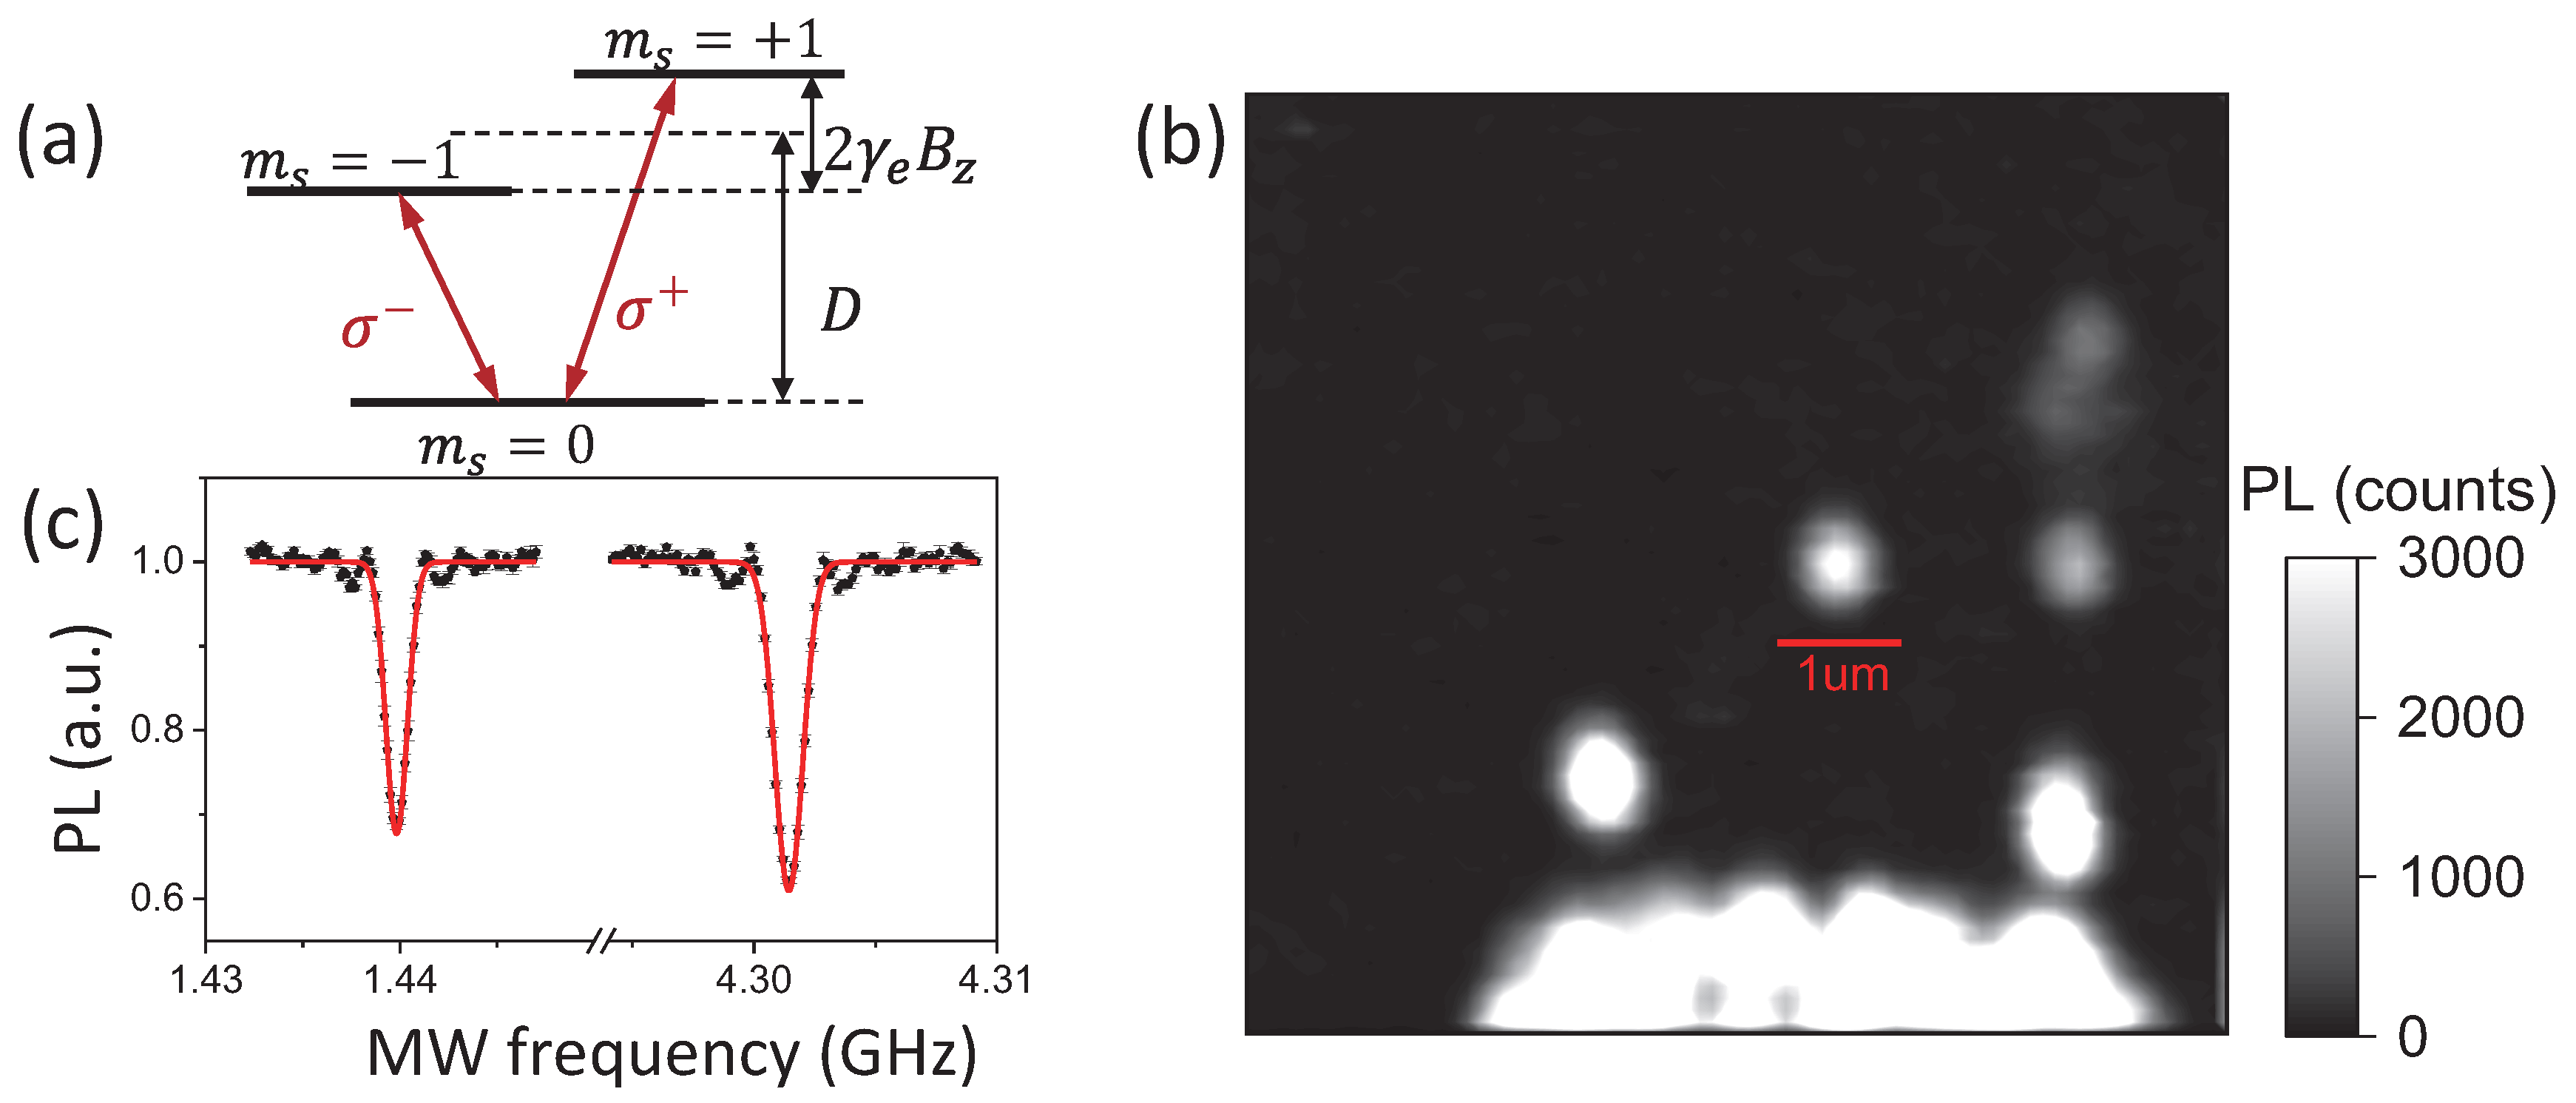 The polarization efficiency for the right-handed circular